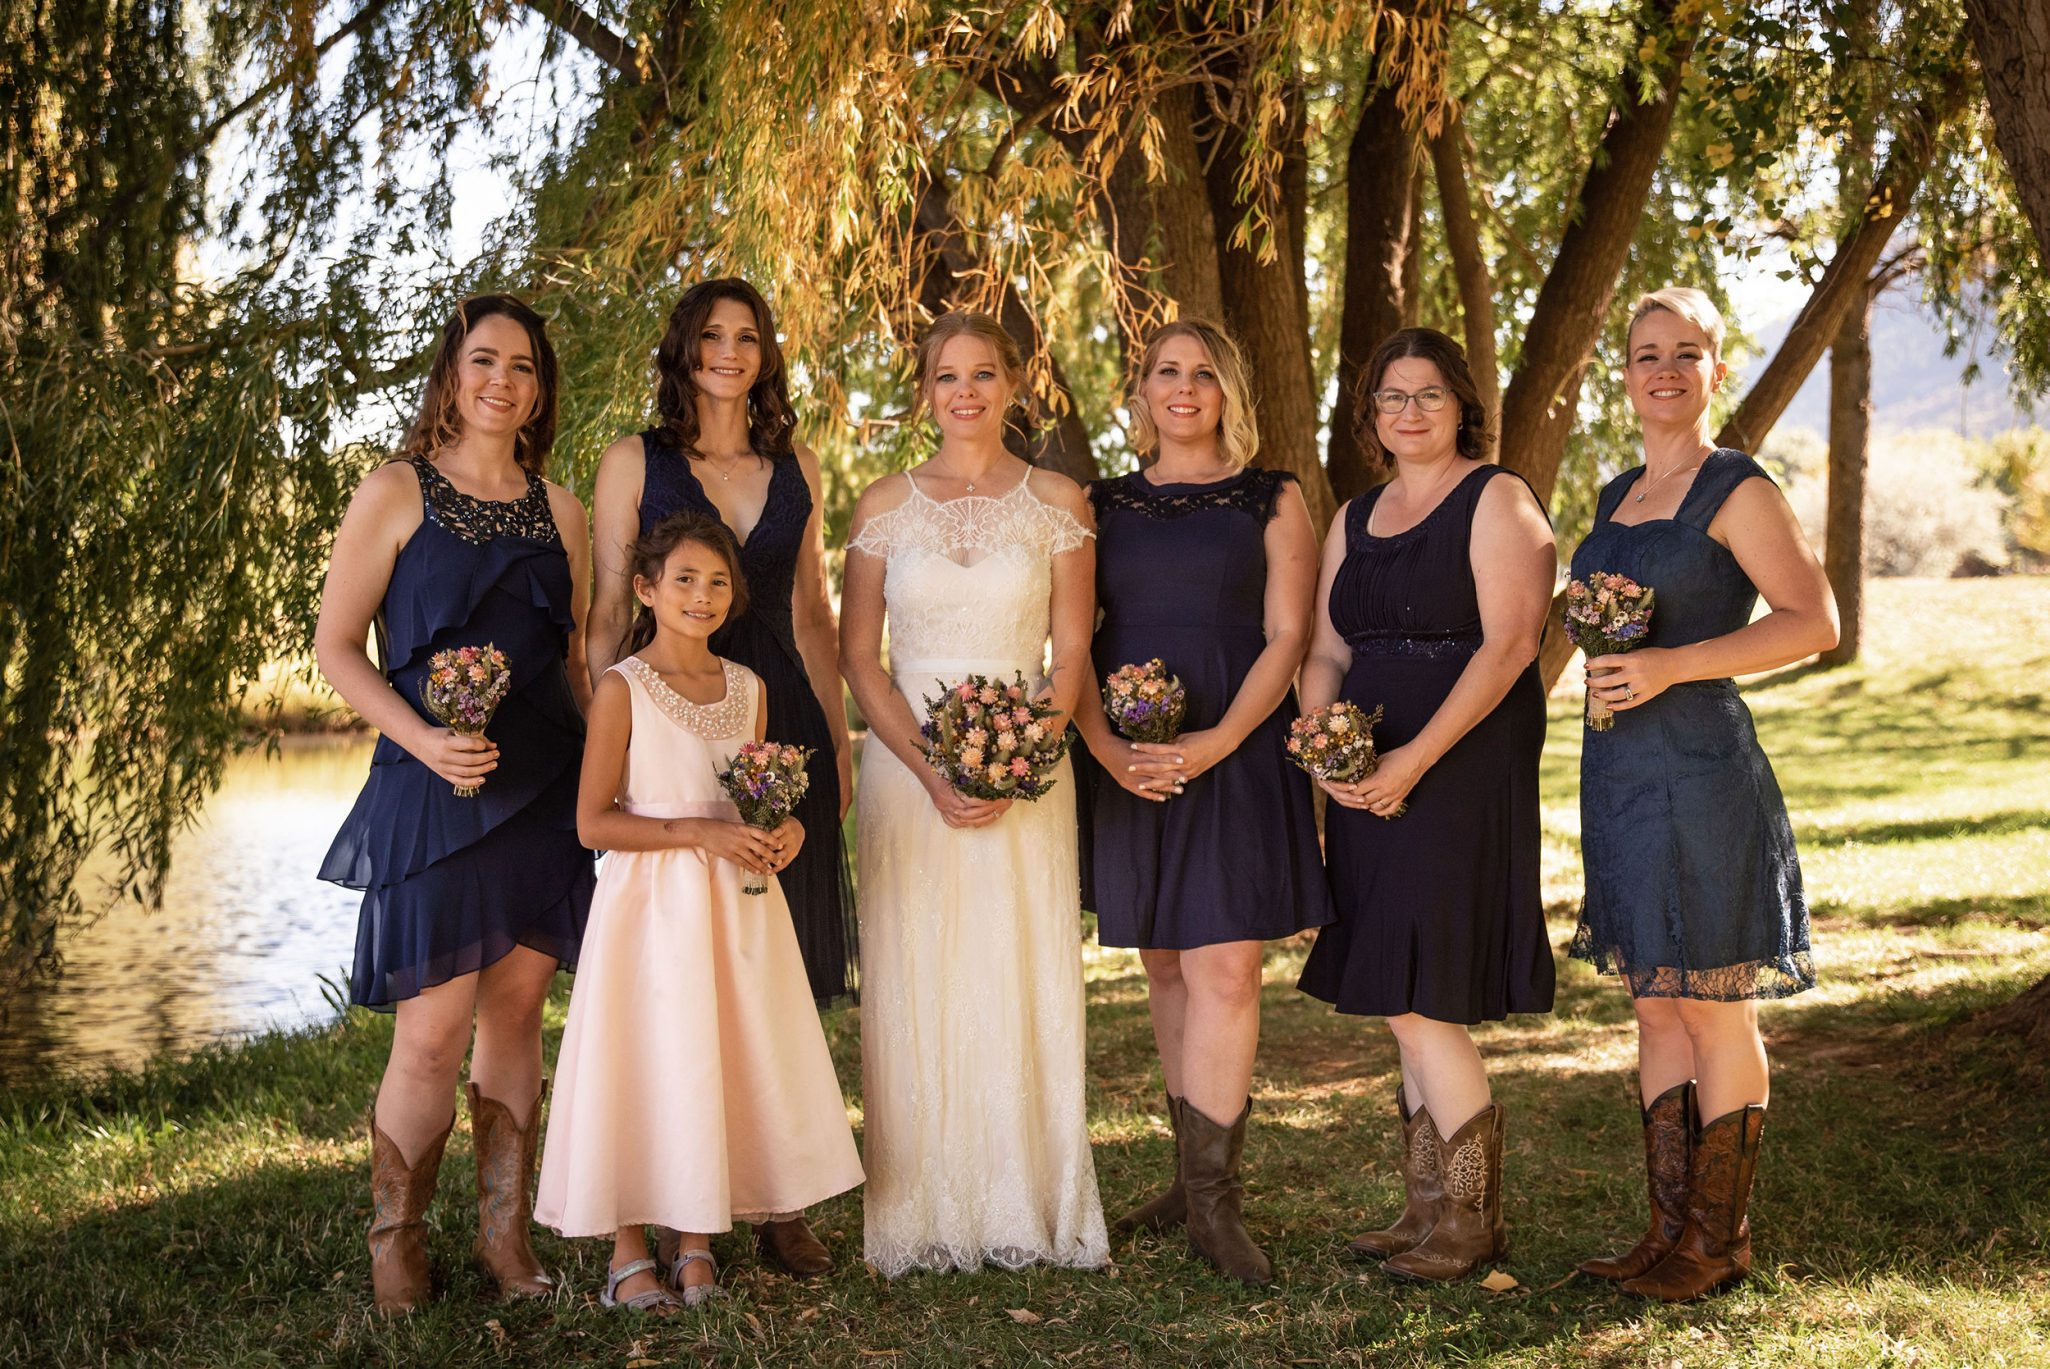 Bridesmaids with cowboy boots and blue dresses   Durango Weddings Magazine